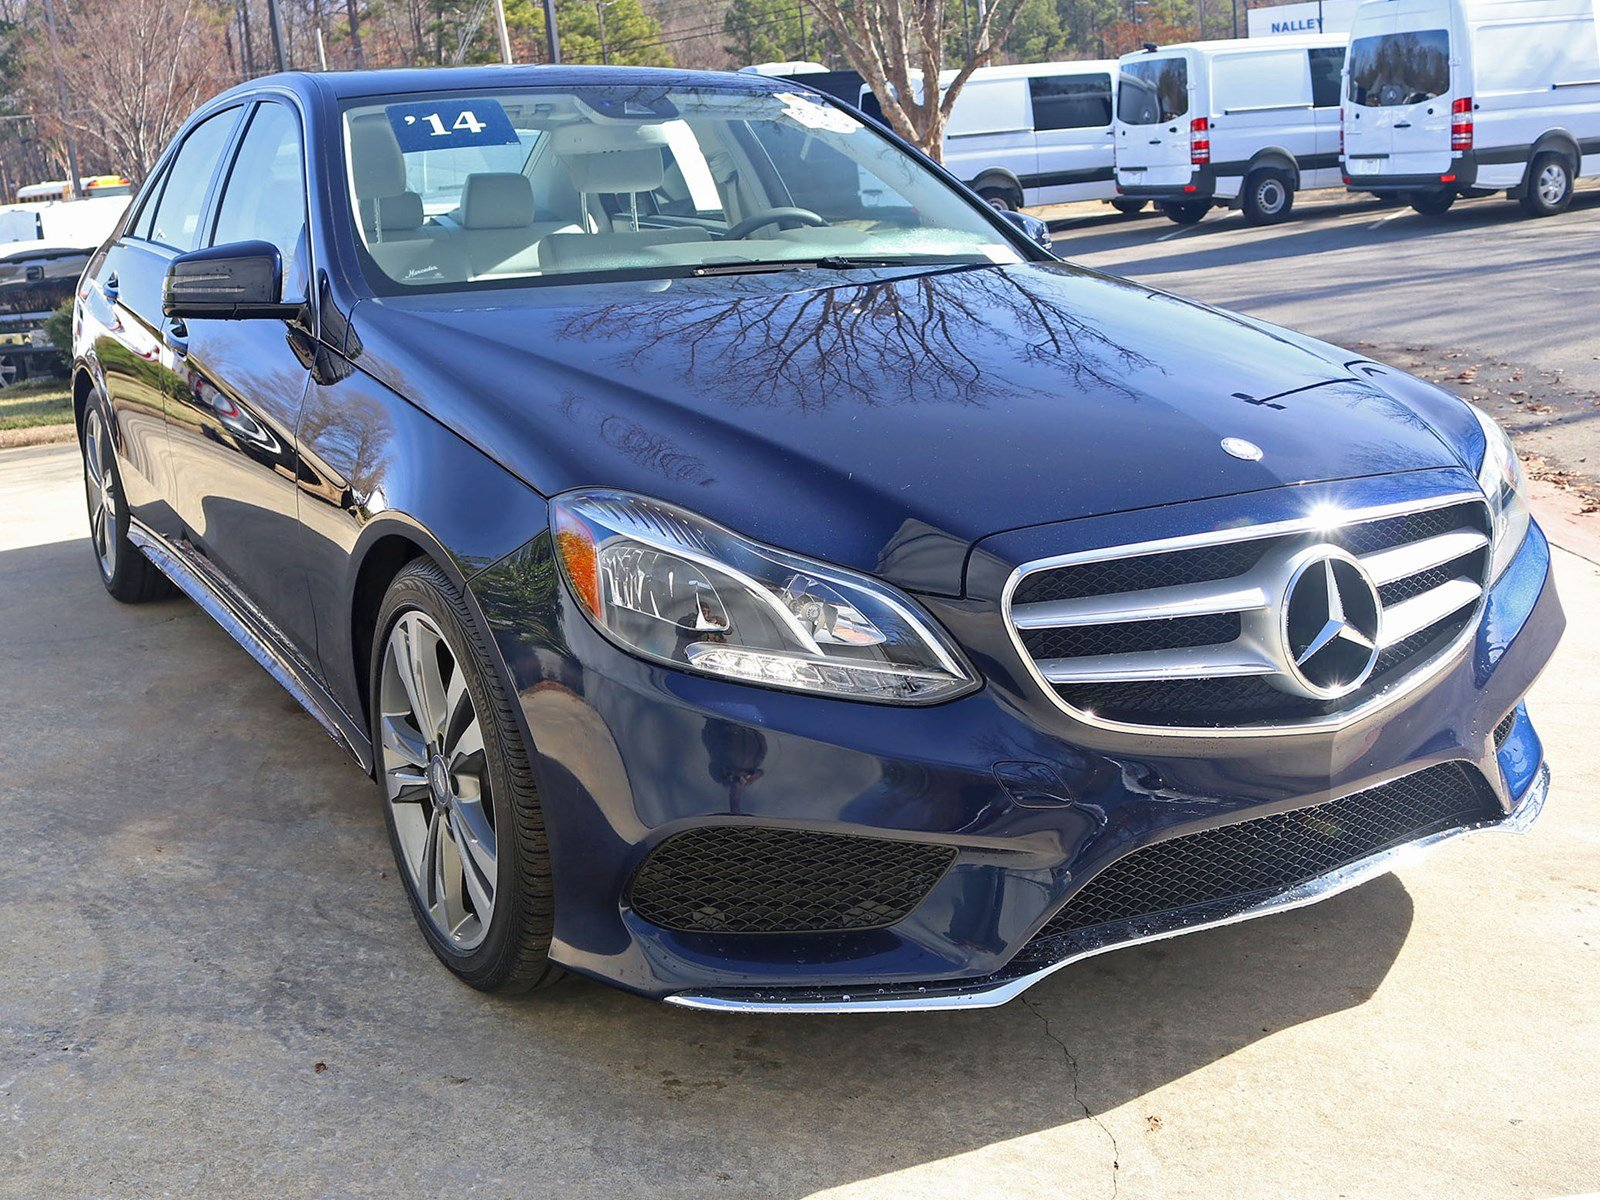 Certified pre owned mercedes benzs rbm of atlanta autos post for Rbm mercedes benz